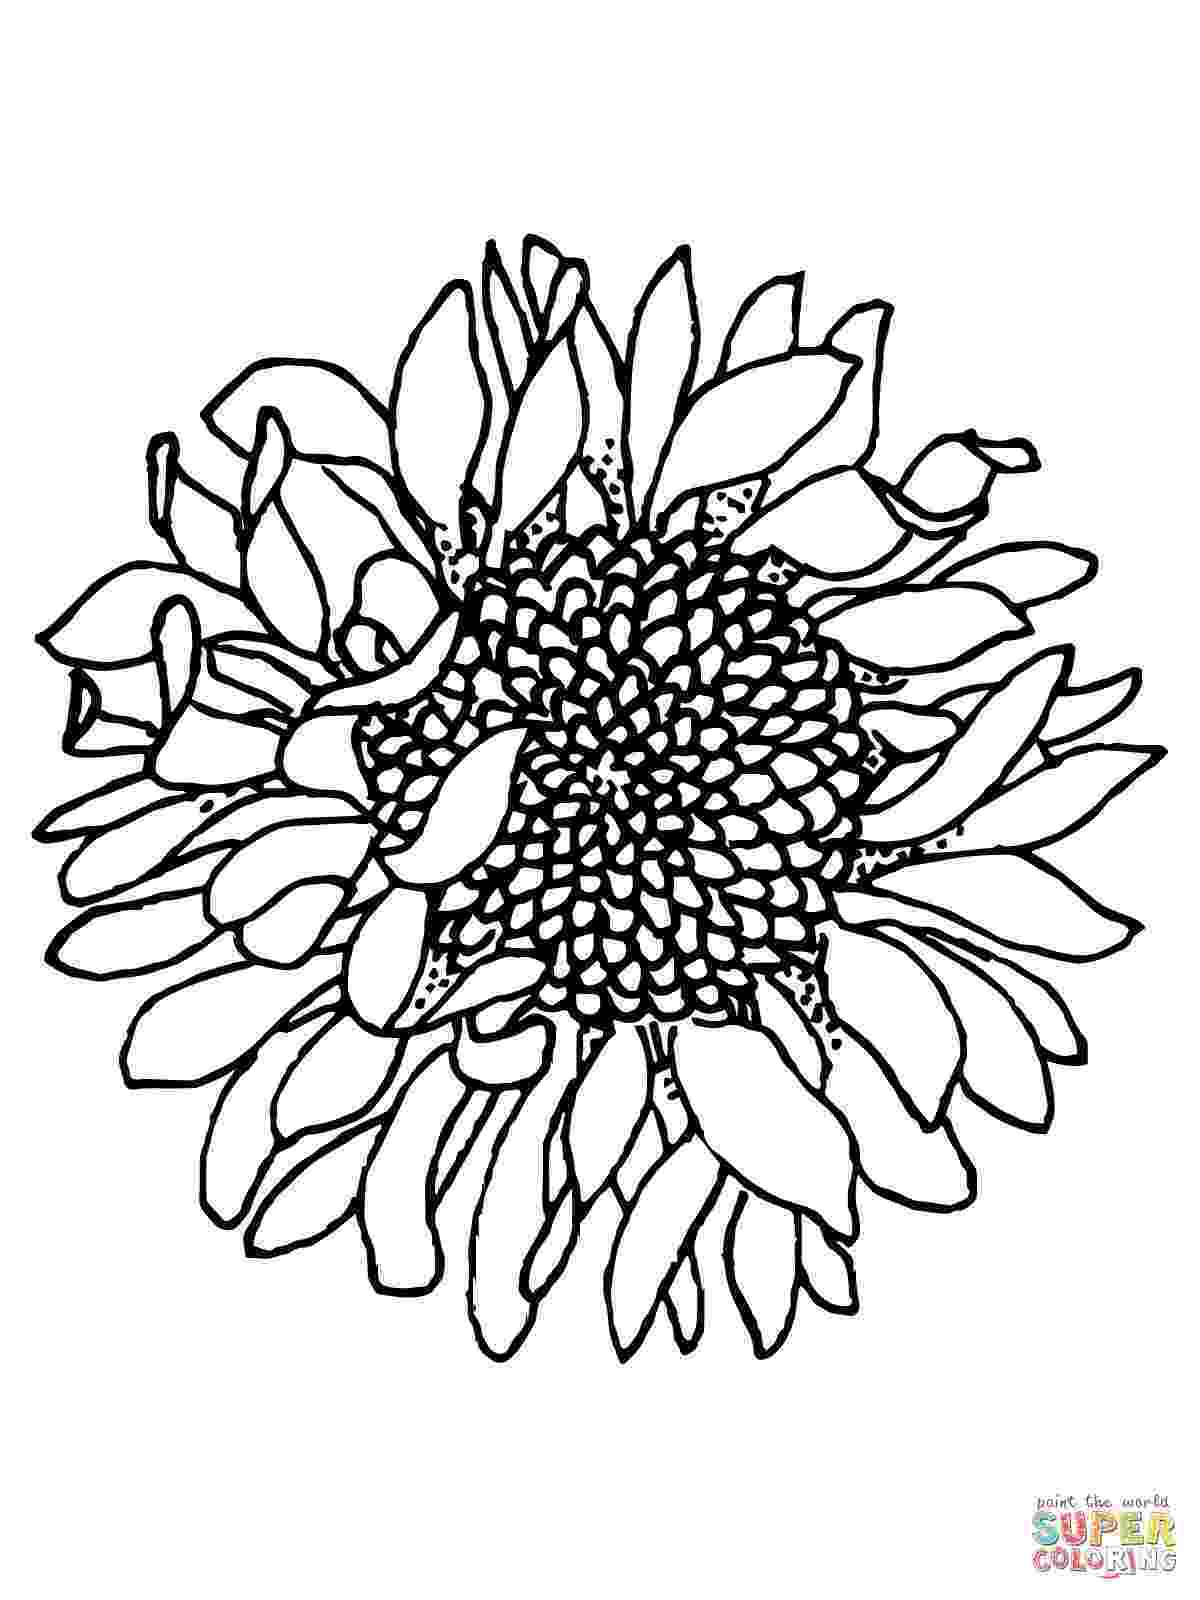 sunflower for coloring sunflower coloring pages free coloring pages clipartsco for coloring sunflower